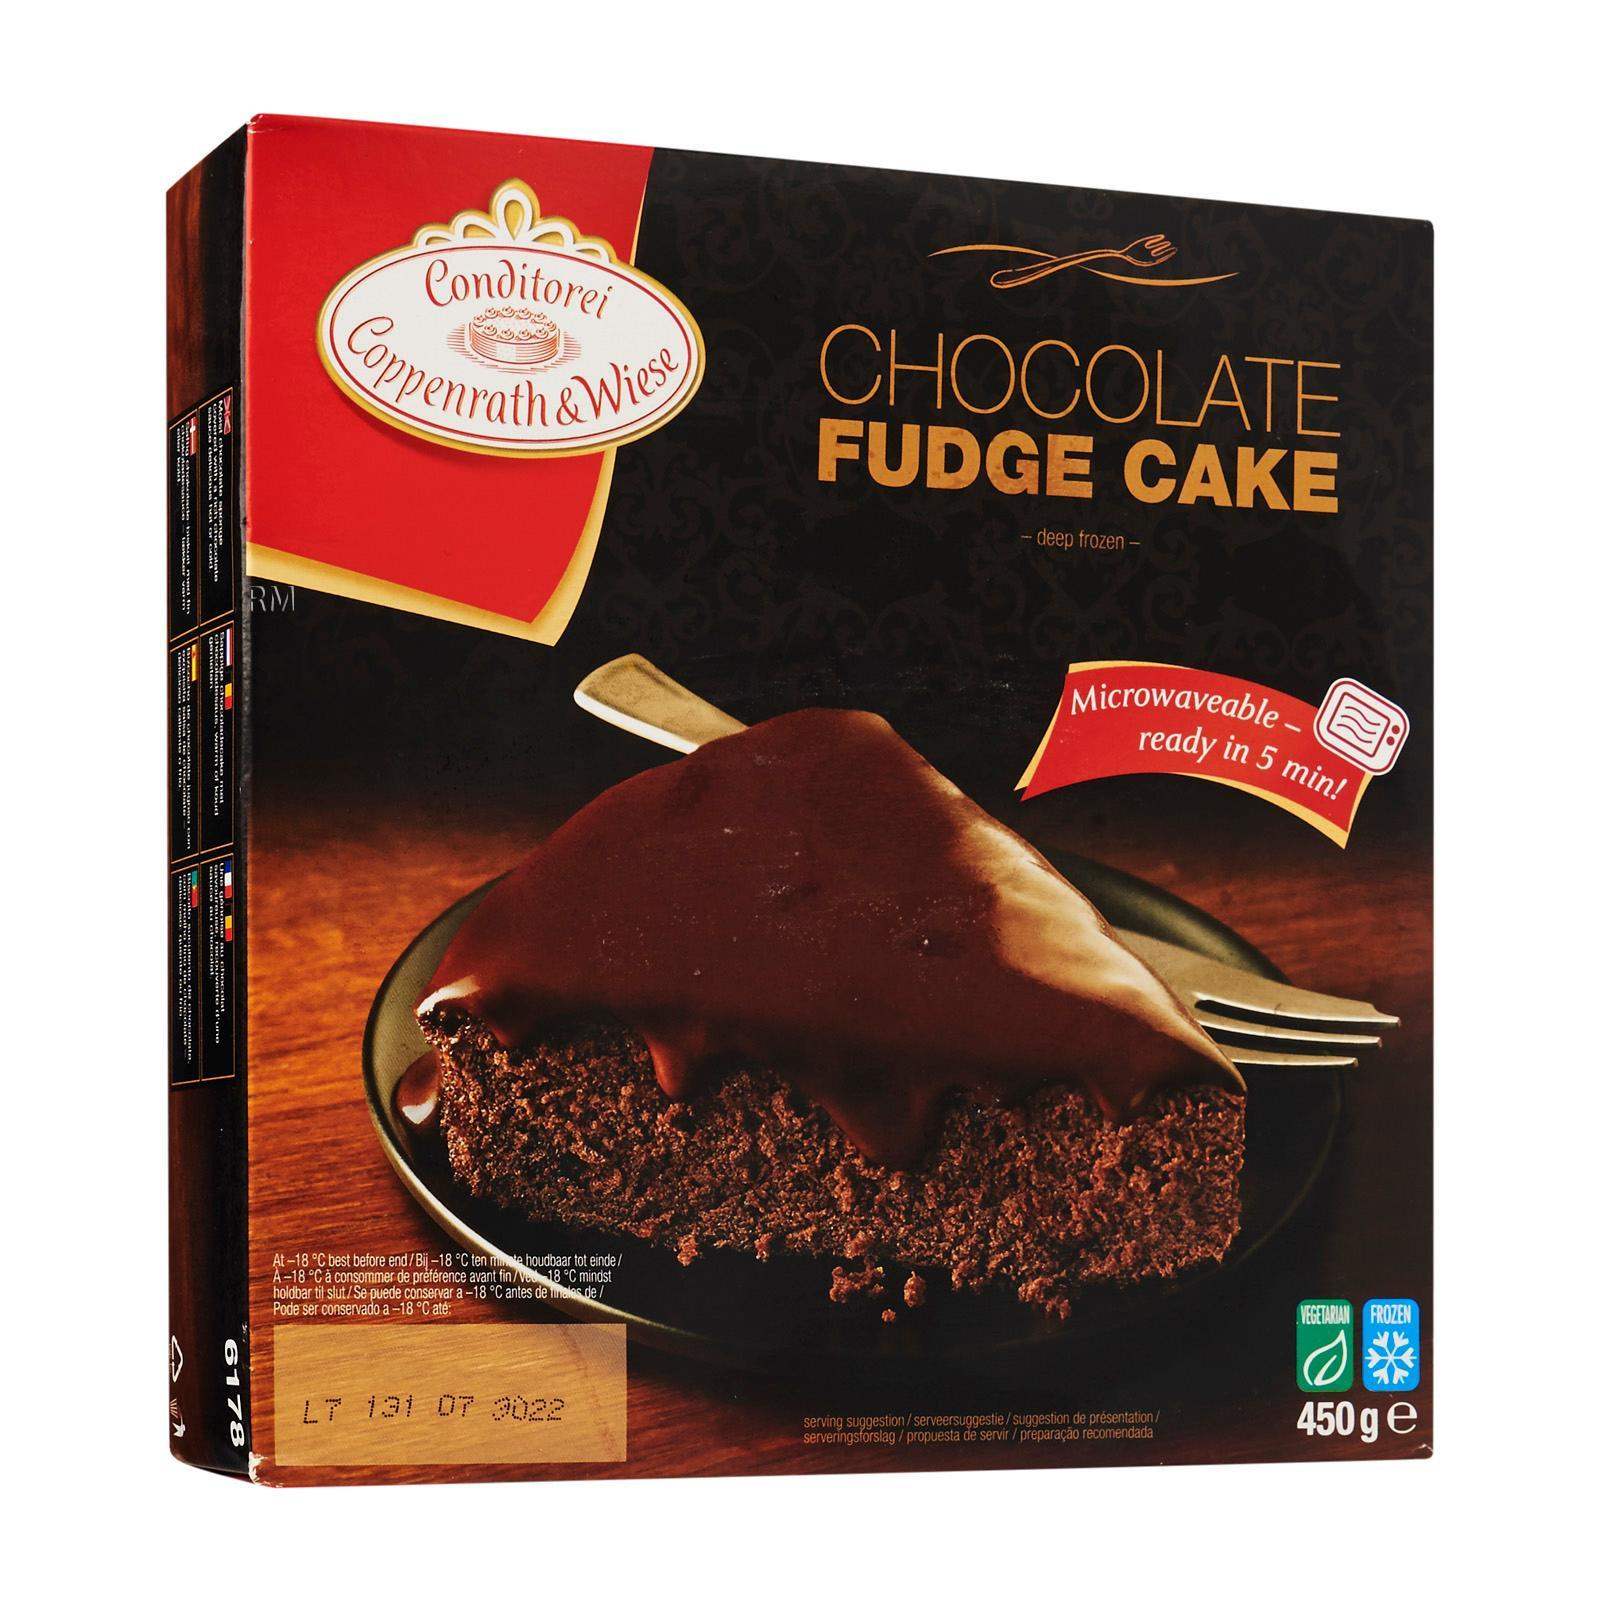 Conditorei Coppenrath & Wiese Chocolate Fudge Cake - Frozen